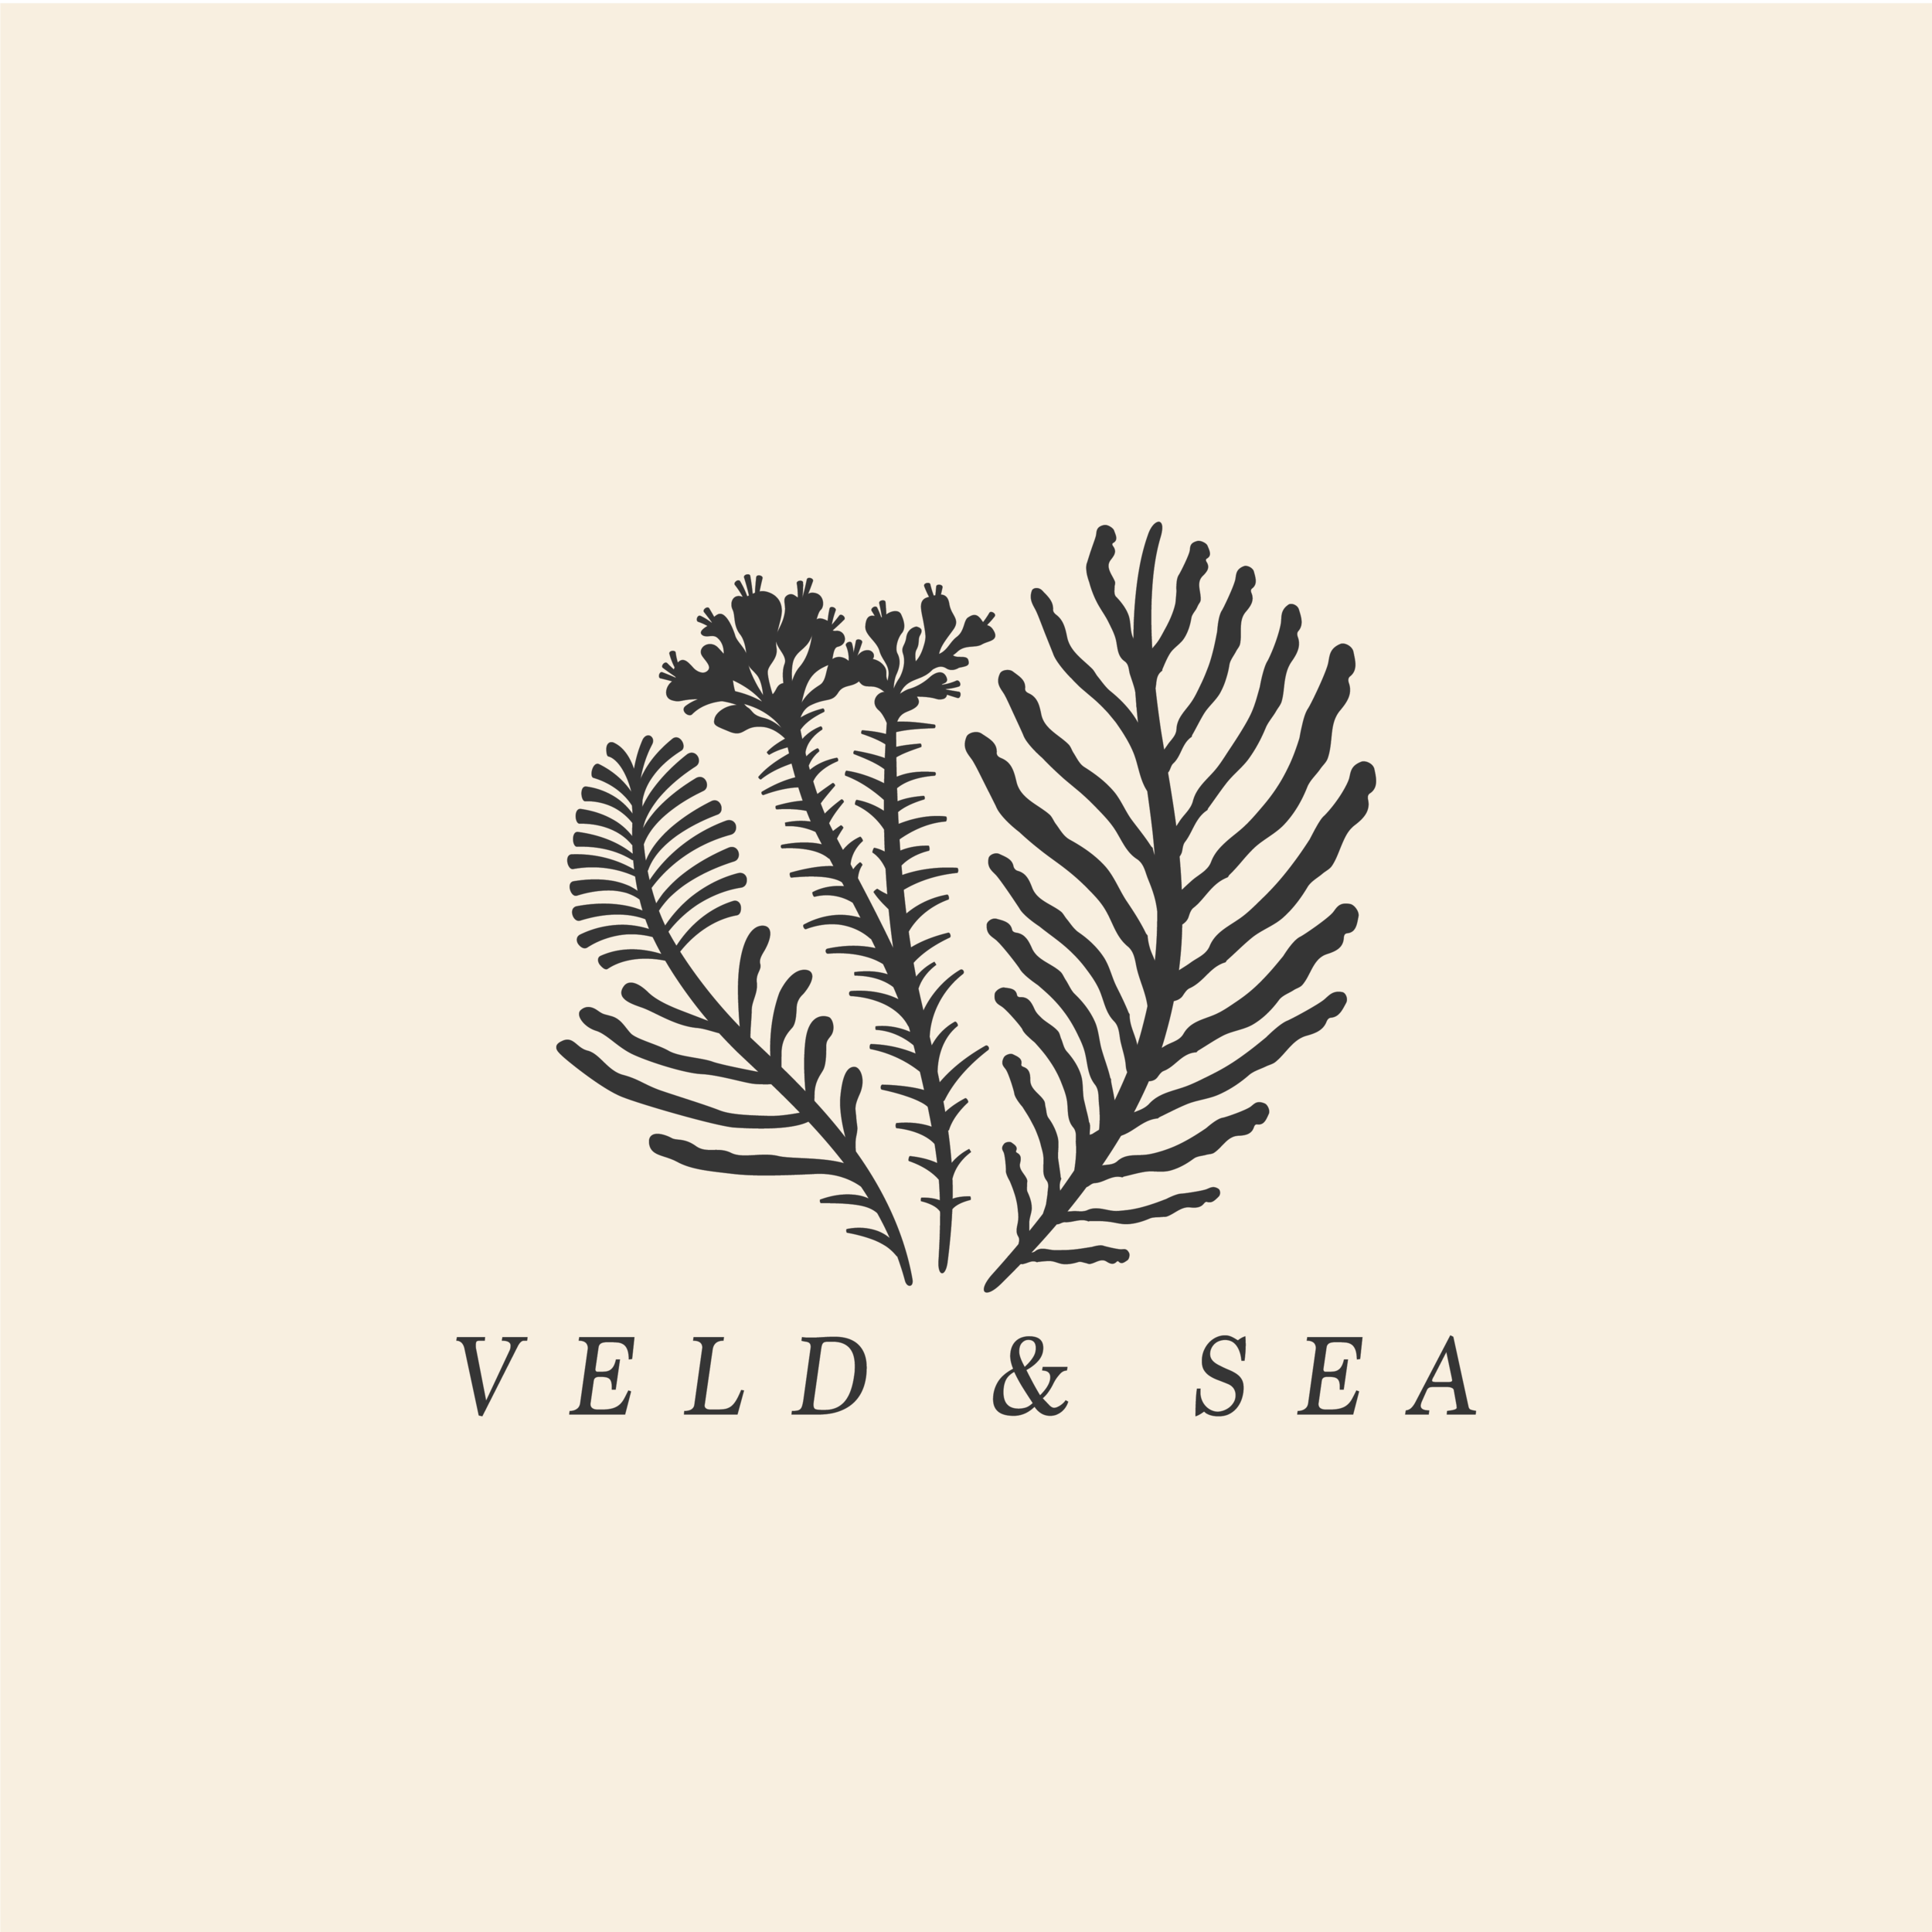 VELD AND SEA_SOCIAL MEDIA_INSTAGRAM IMAGE SIZE.png